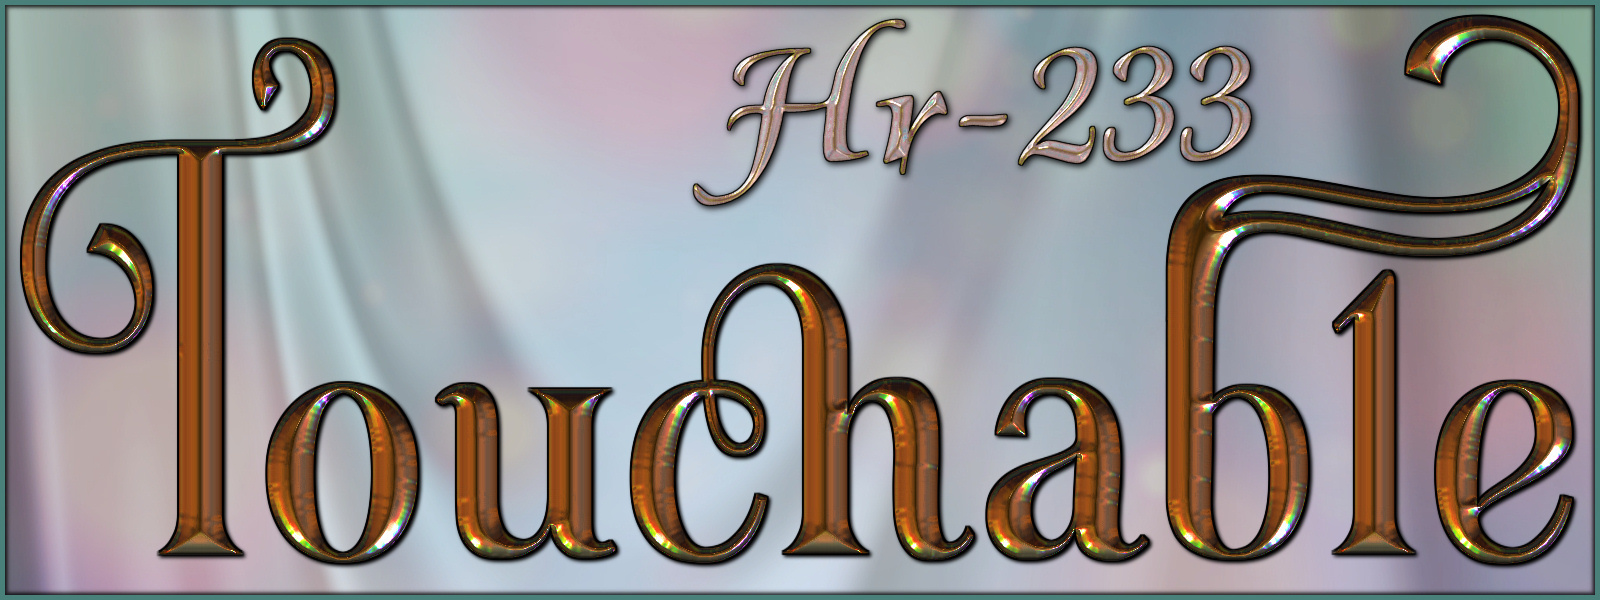 Touchable Hr-233 by -Wolfie-